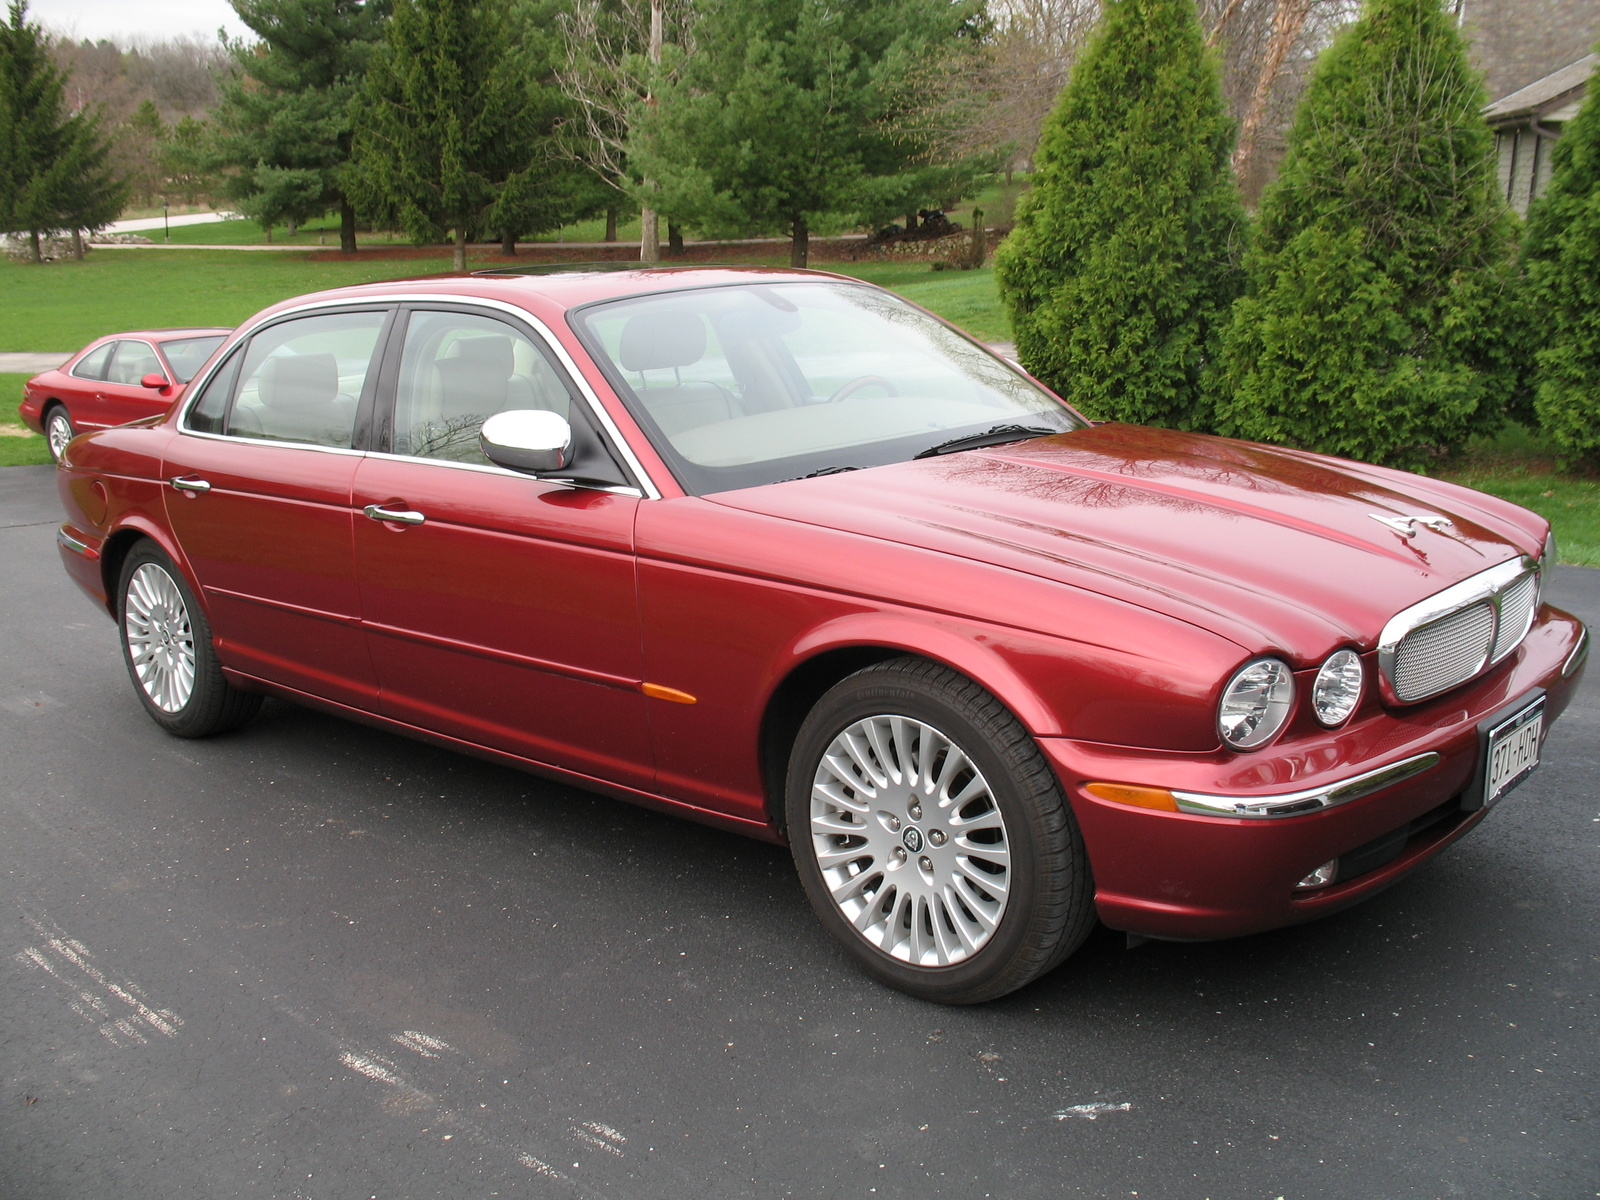 Picture of 2005 Jaguar XJ-Series 4 Dr Vanden Plas Sedan